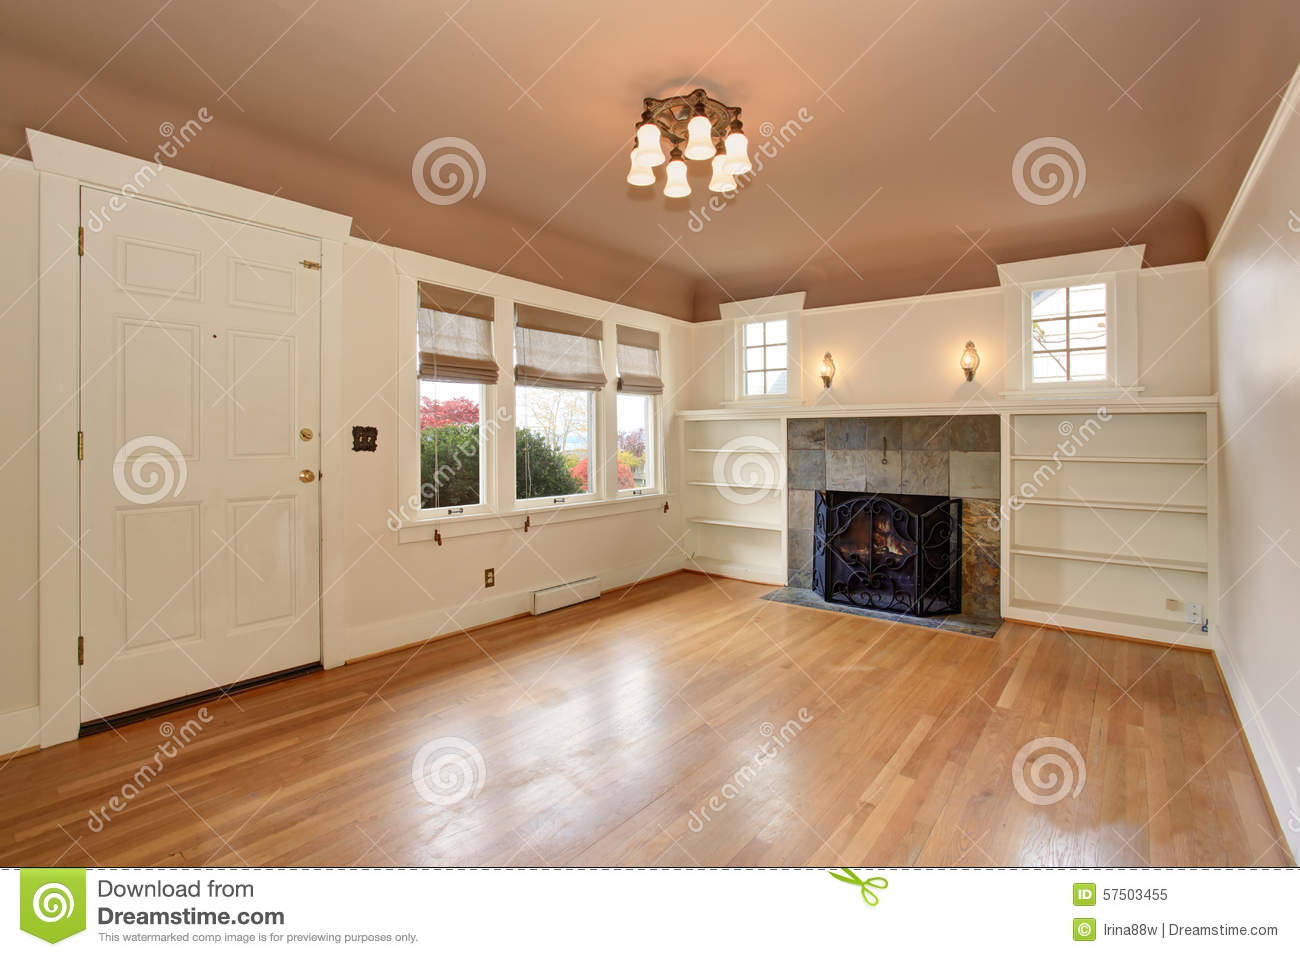 Cozy Living Room With Rose Interior Ceiling Paint.